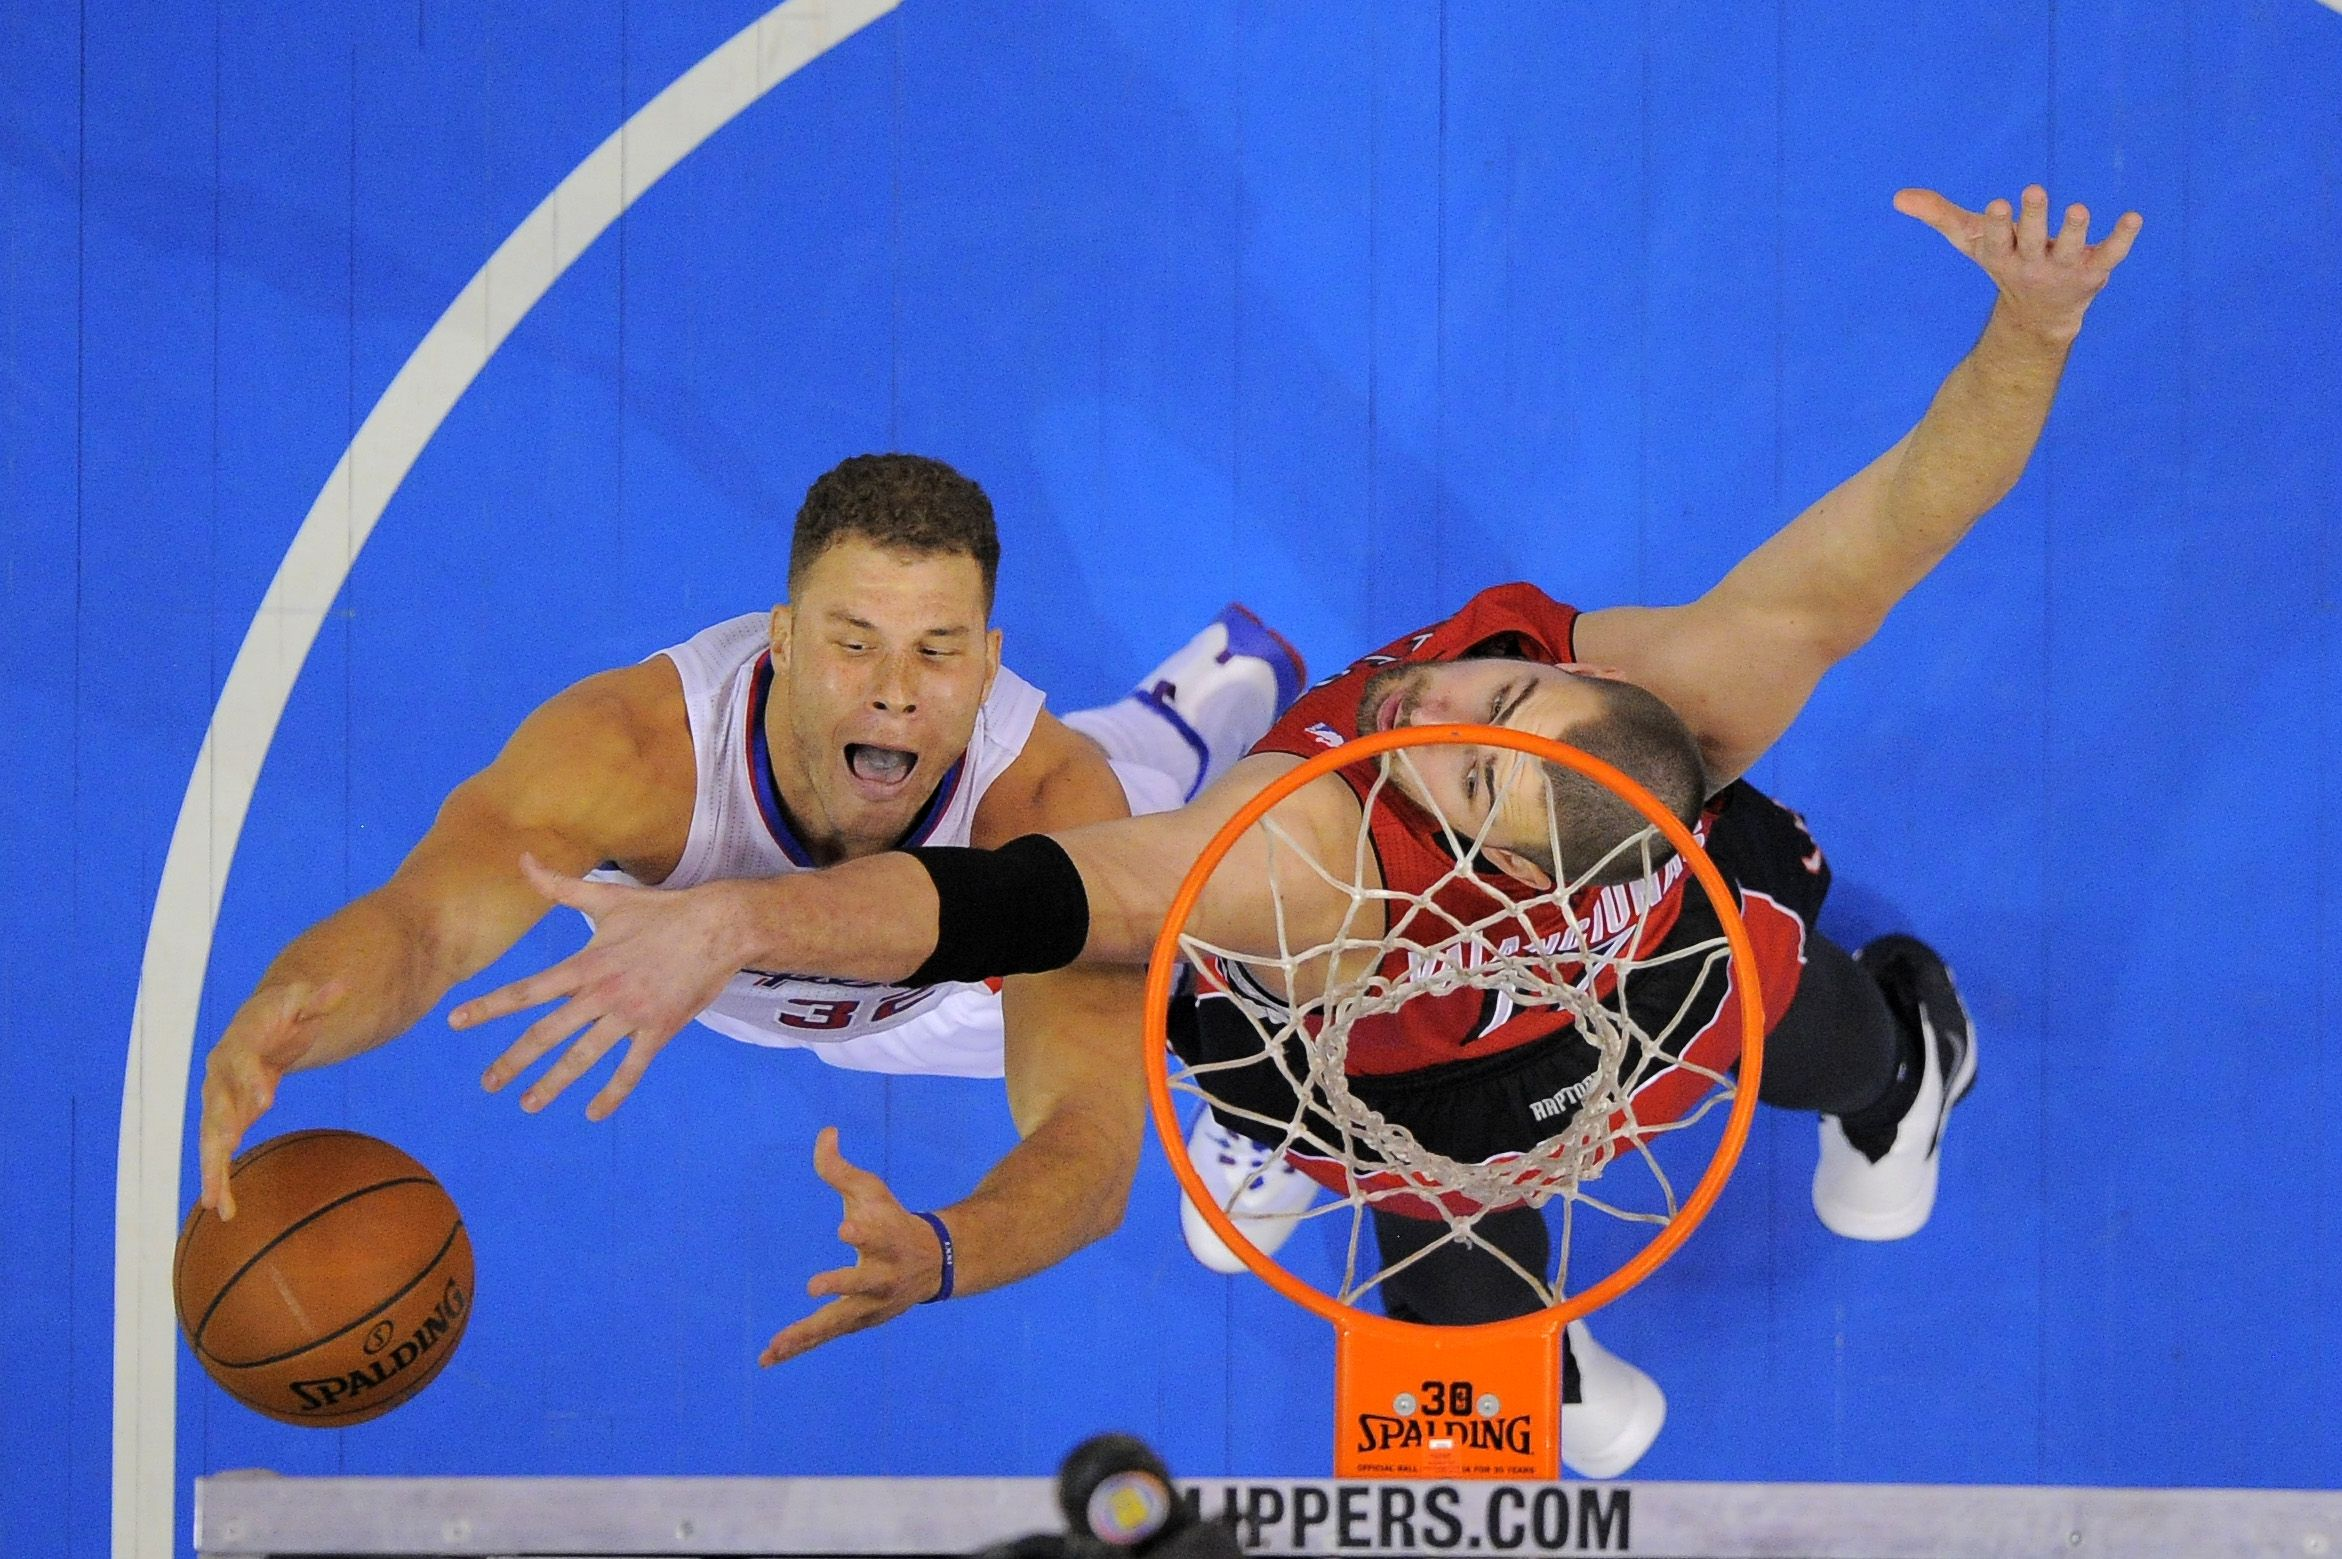 Los Angeles Clippers forward Blake Griffin, left, puts up a shot as Toronto Raptors center Jonas Valanciunas, of Lithuania, defends during the first half of an NBA basketball game, Friday, Feb. 7, 2014, in Los Angeles. (AP Photo/Mark J. Terrill)